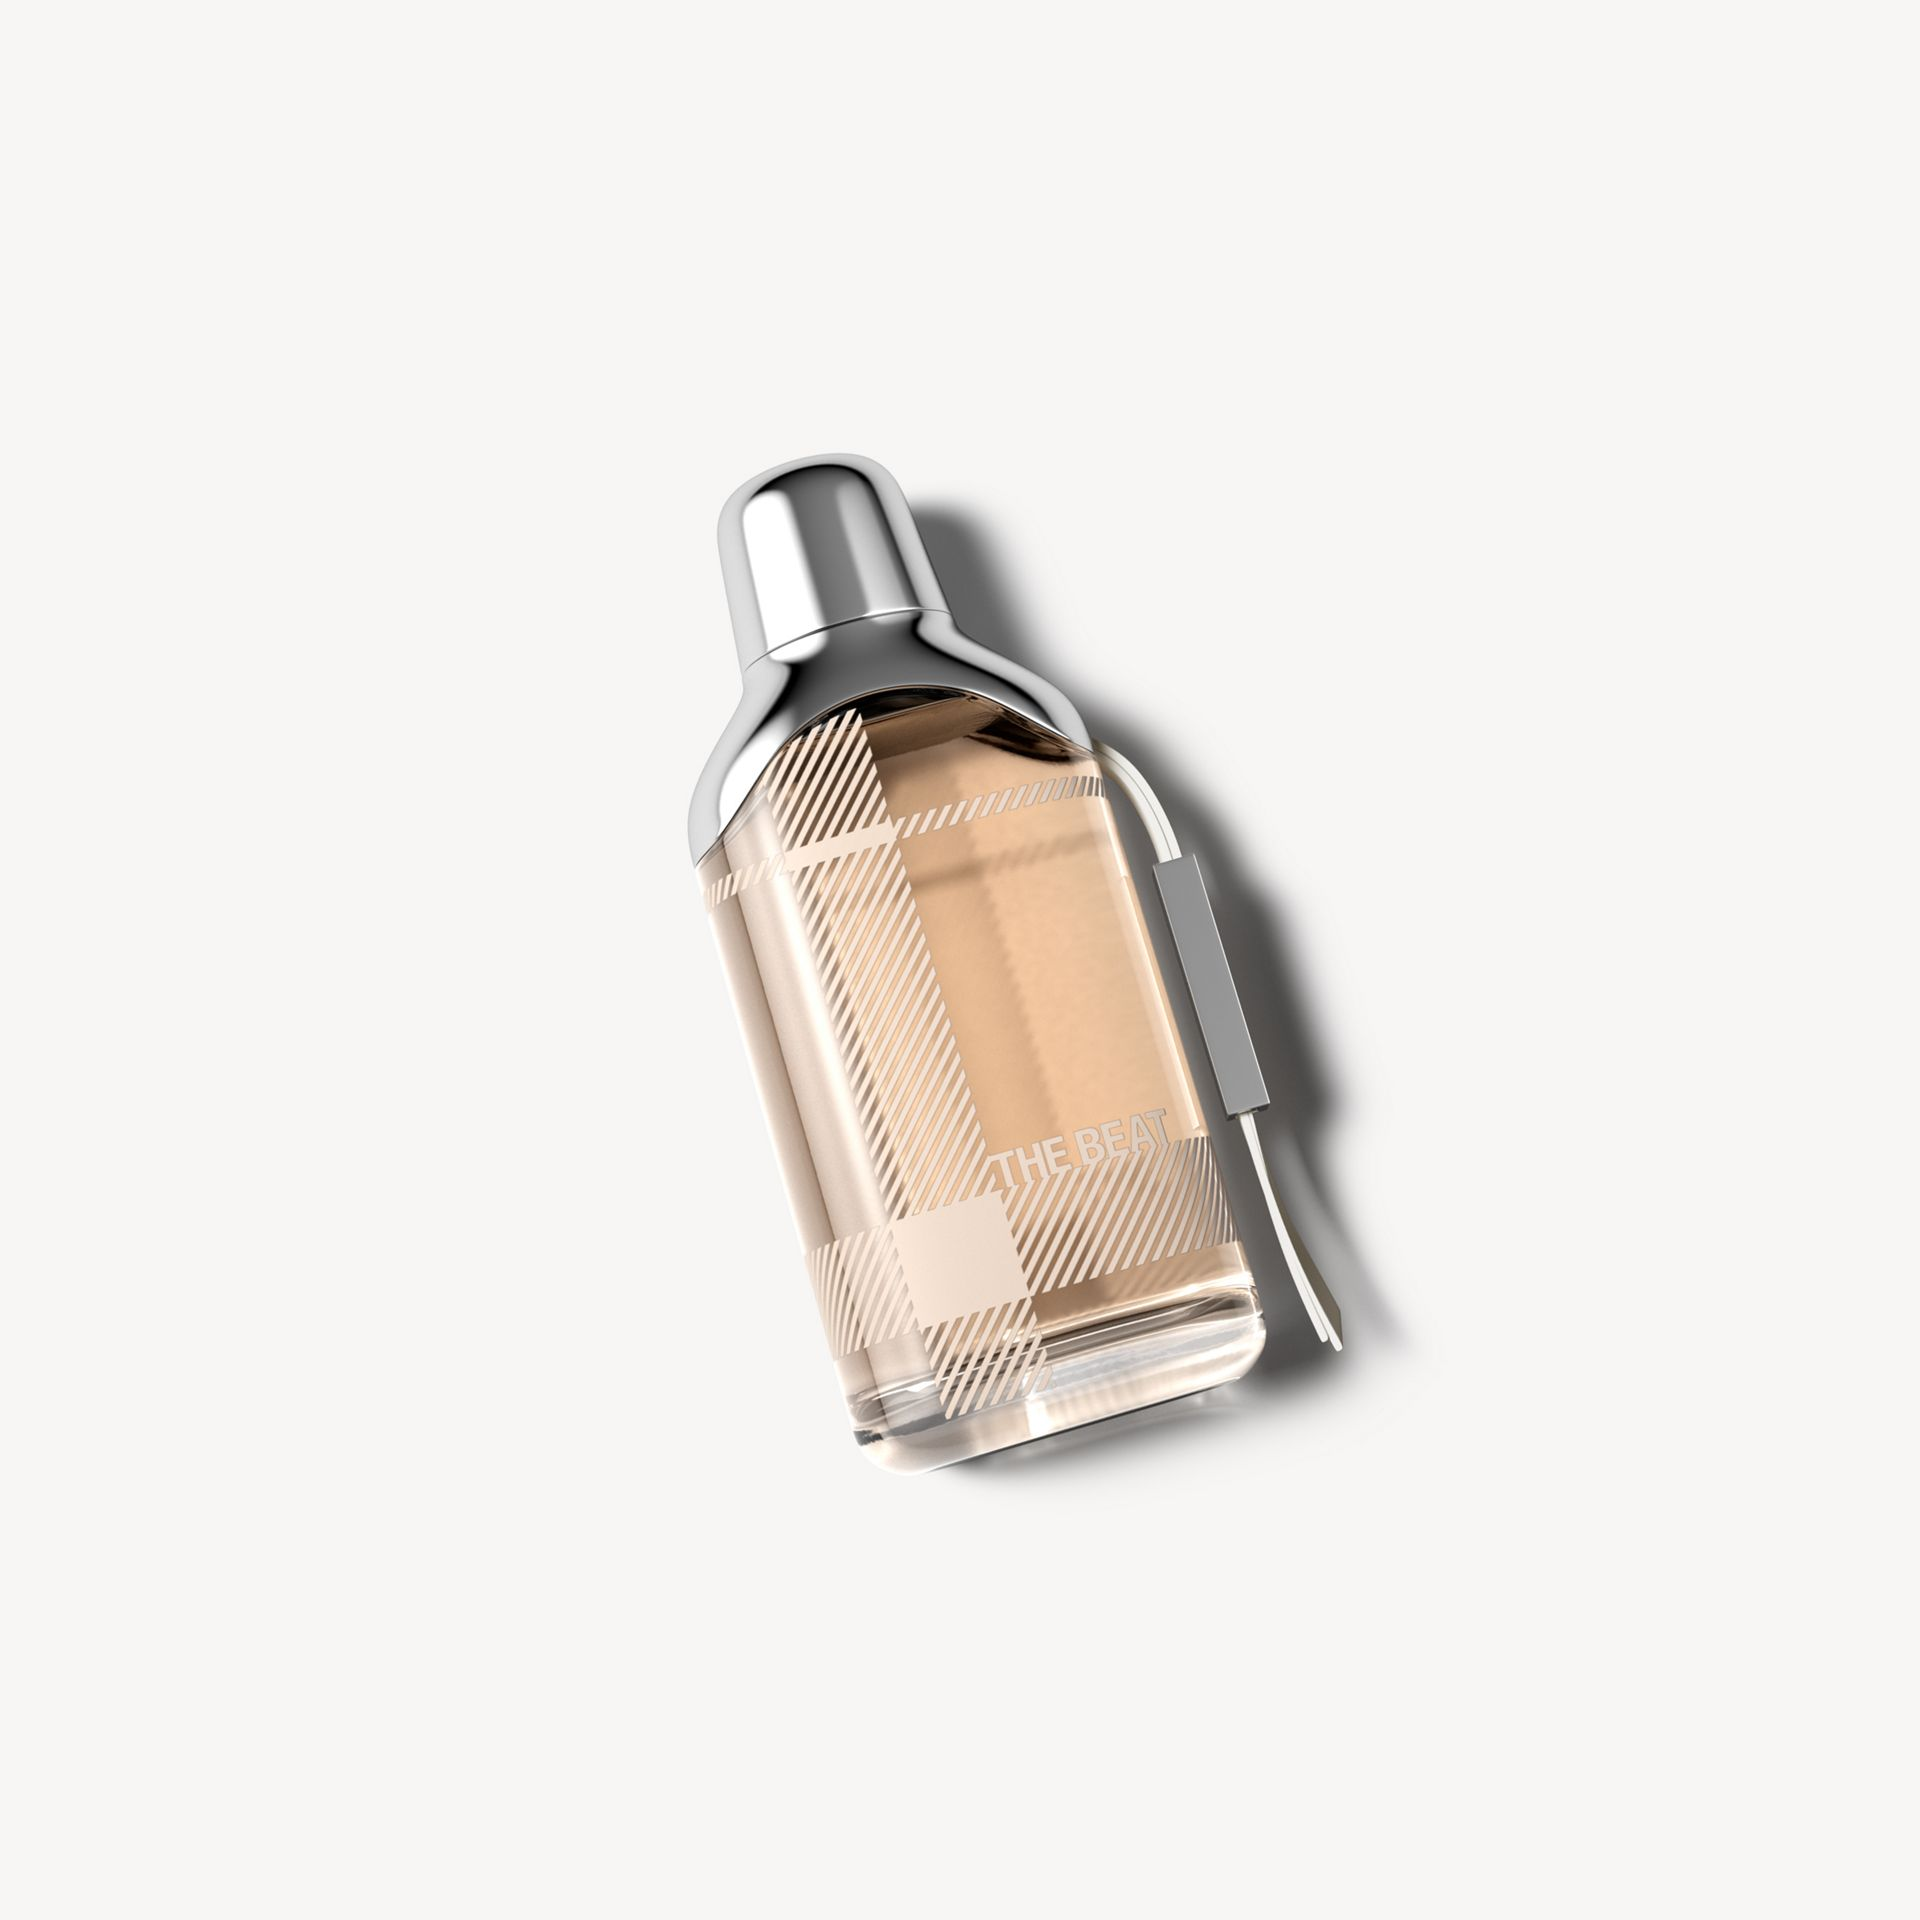 Burberry The Beat Eau de Parfum 50 ml (50 ml) - Damen | Burberry - Galerie-Bild 1